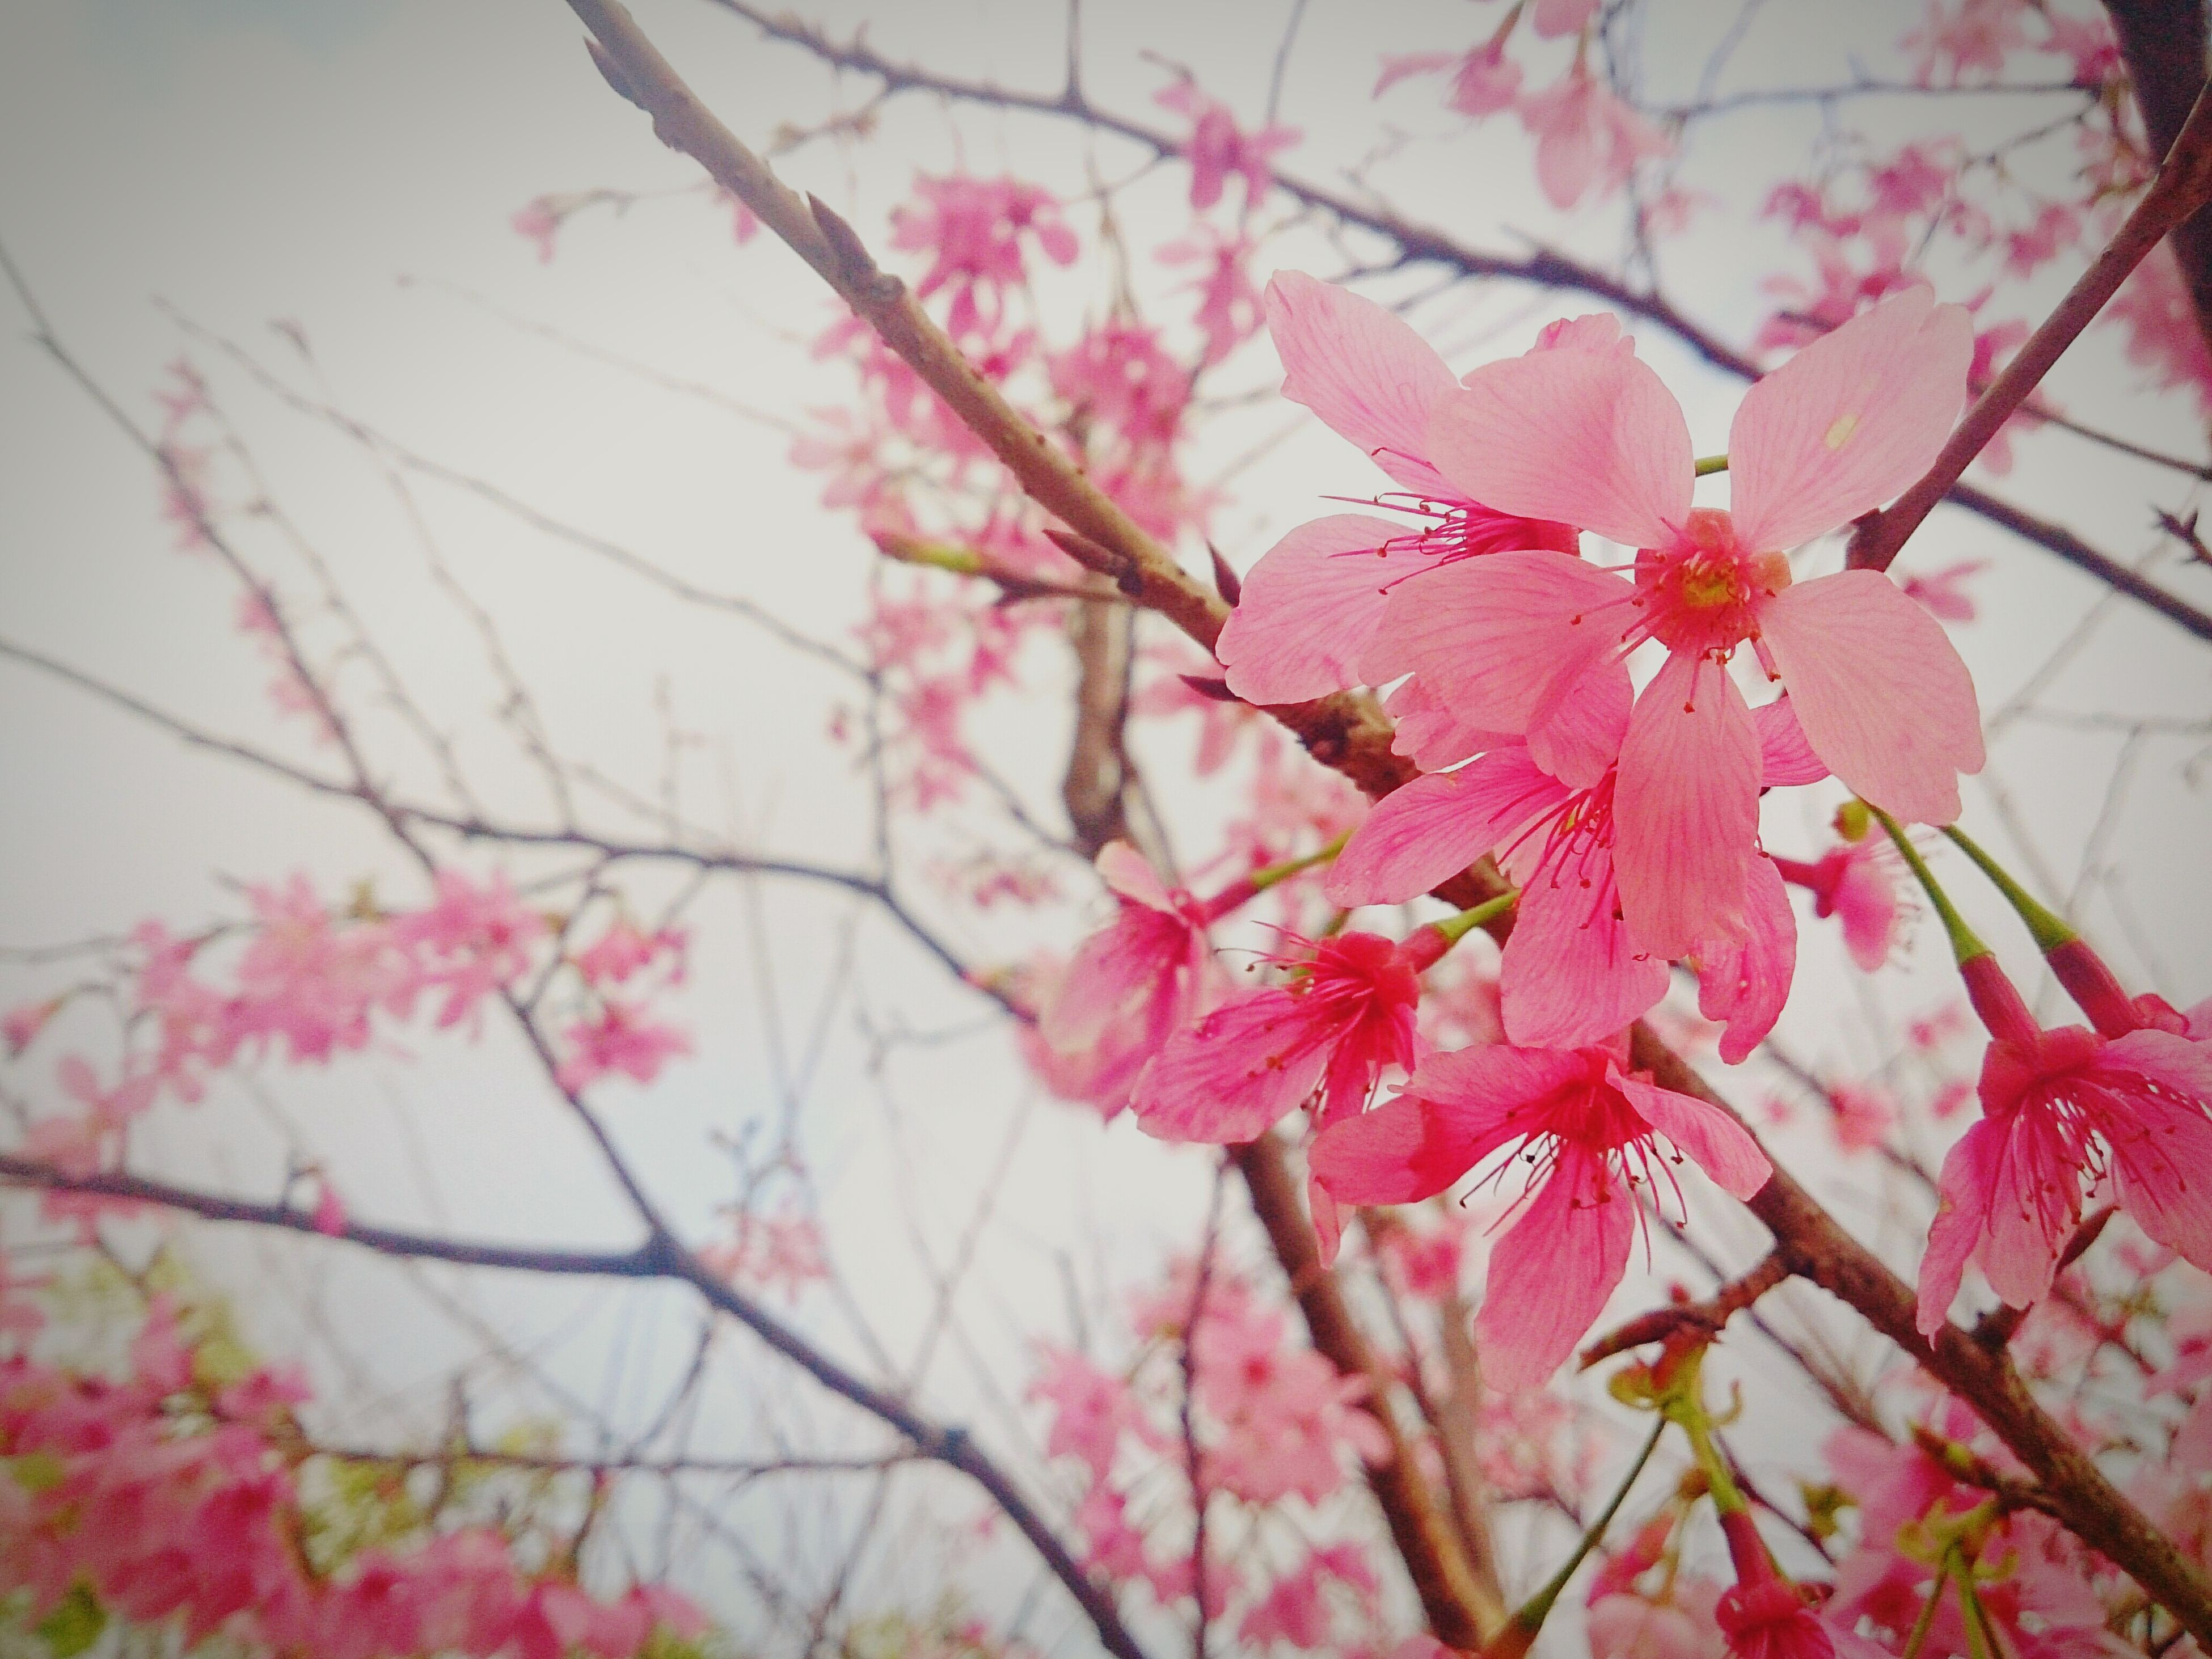 flower, freshness, fragility, pink color, petal, growth, beauty in nature, branch, nature, blooming, blossom, in bloom, tree, flower head, low angle view, close-up, focus on foreground, springtime, cherry blossom, pink